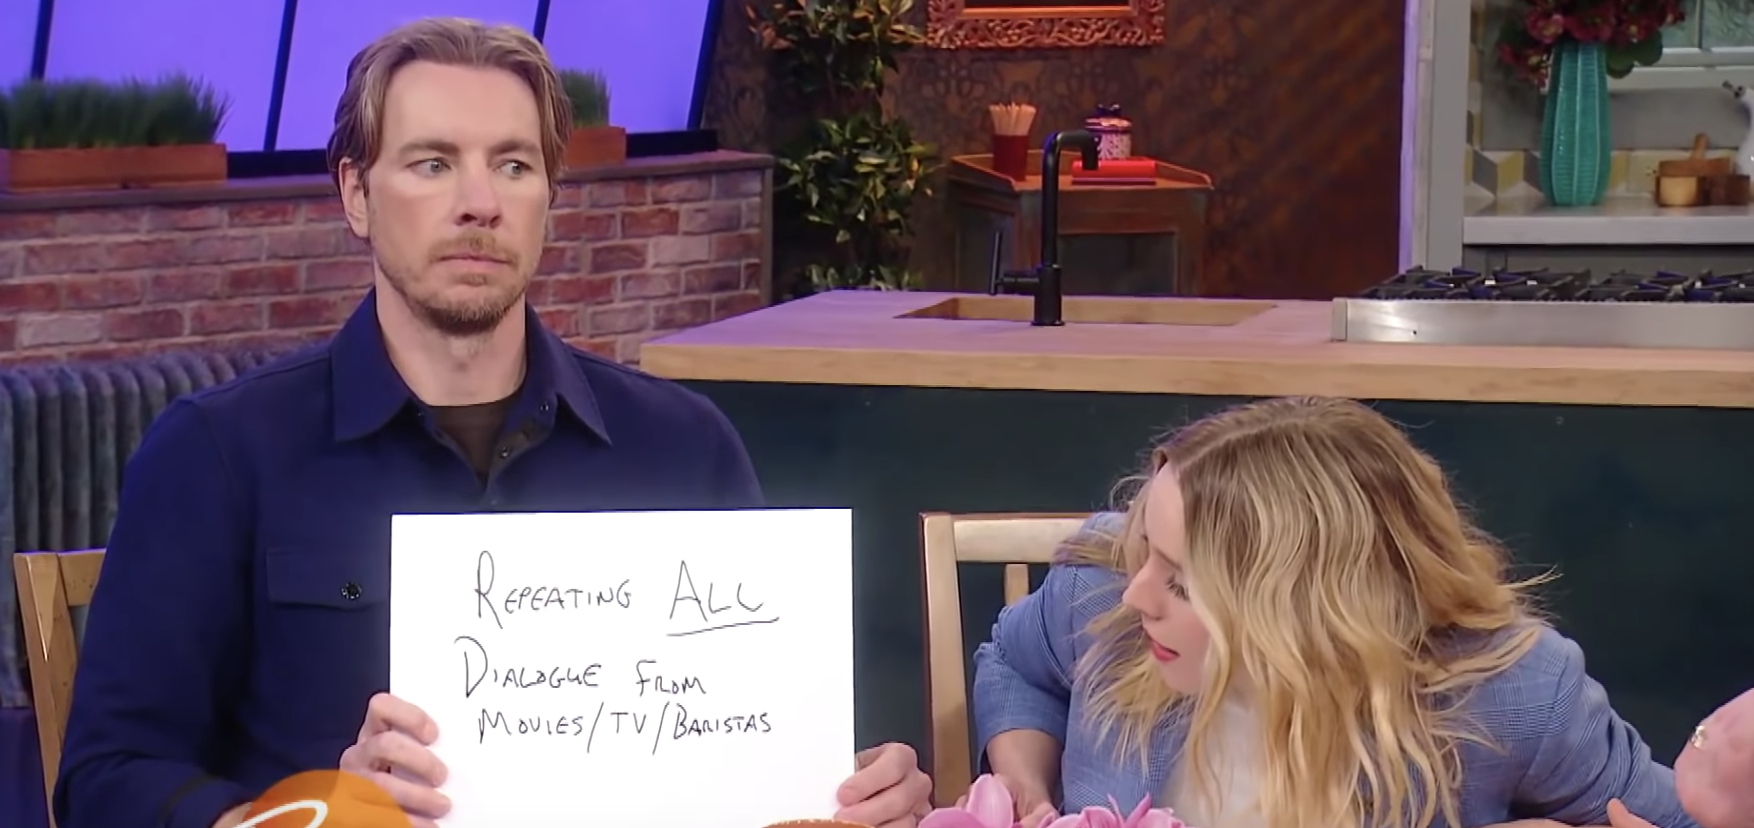 Dax Shepard Called Out Kristen Bell For Repeating Baristas' Accents, And It's Hilarious